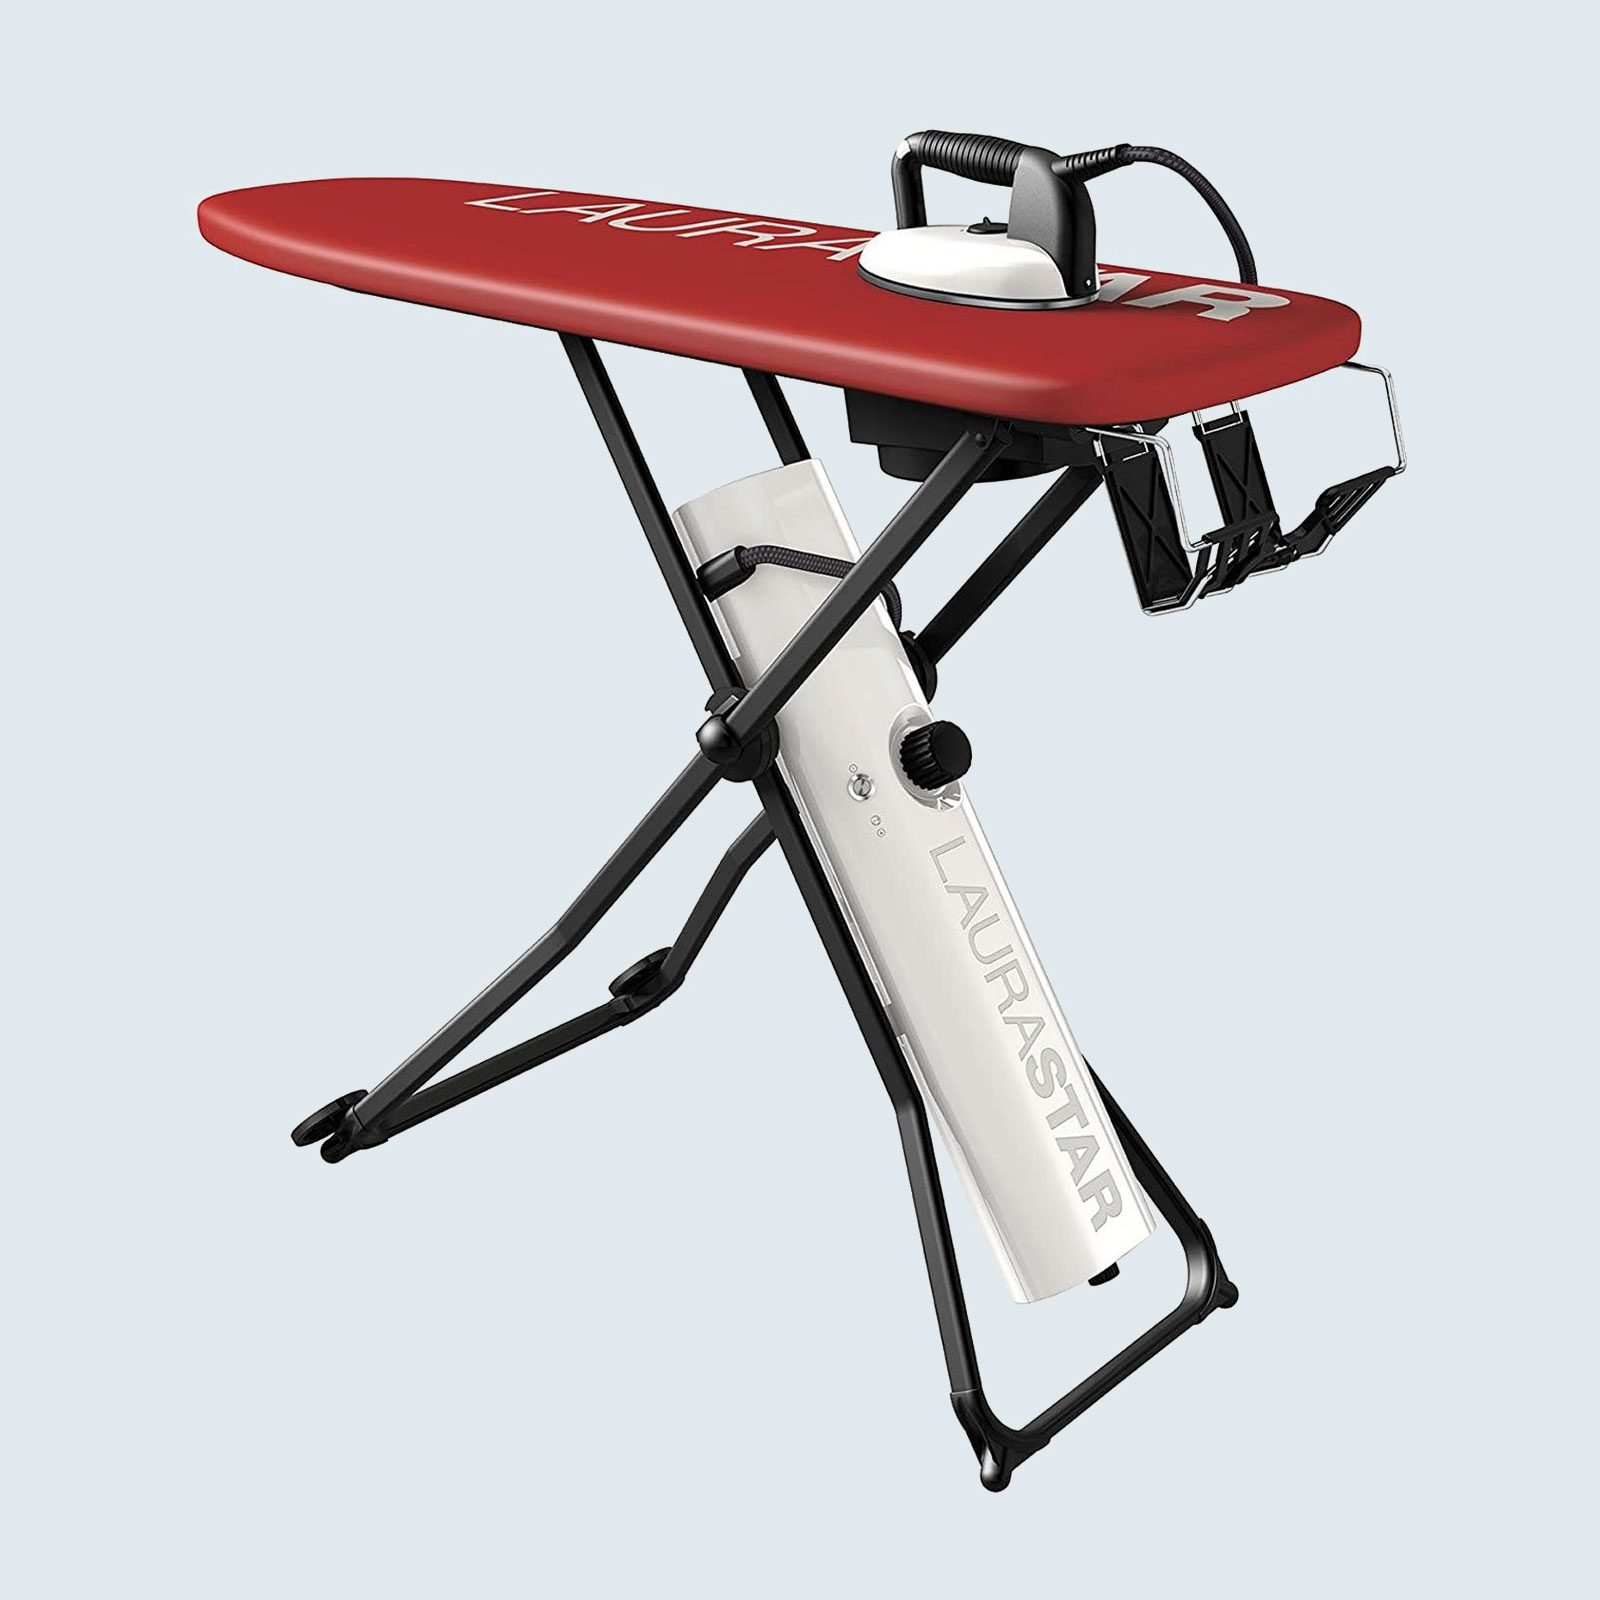 Laurastar Go Plus All-In-One Ironing System